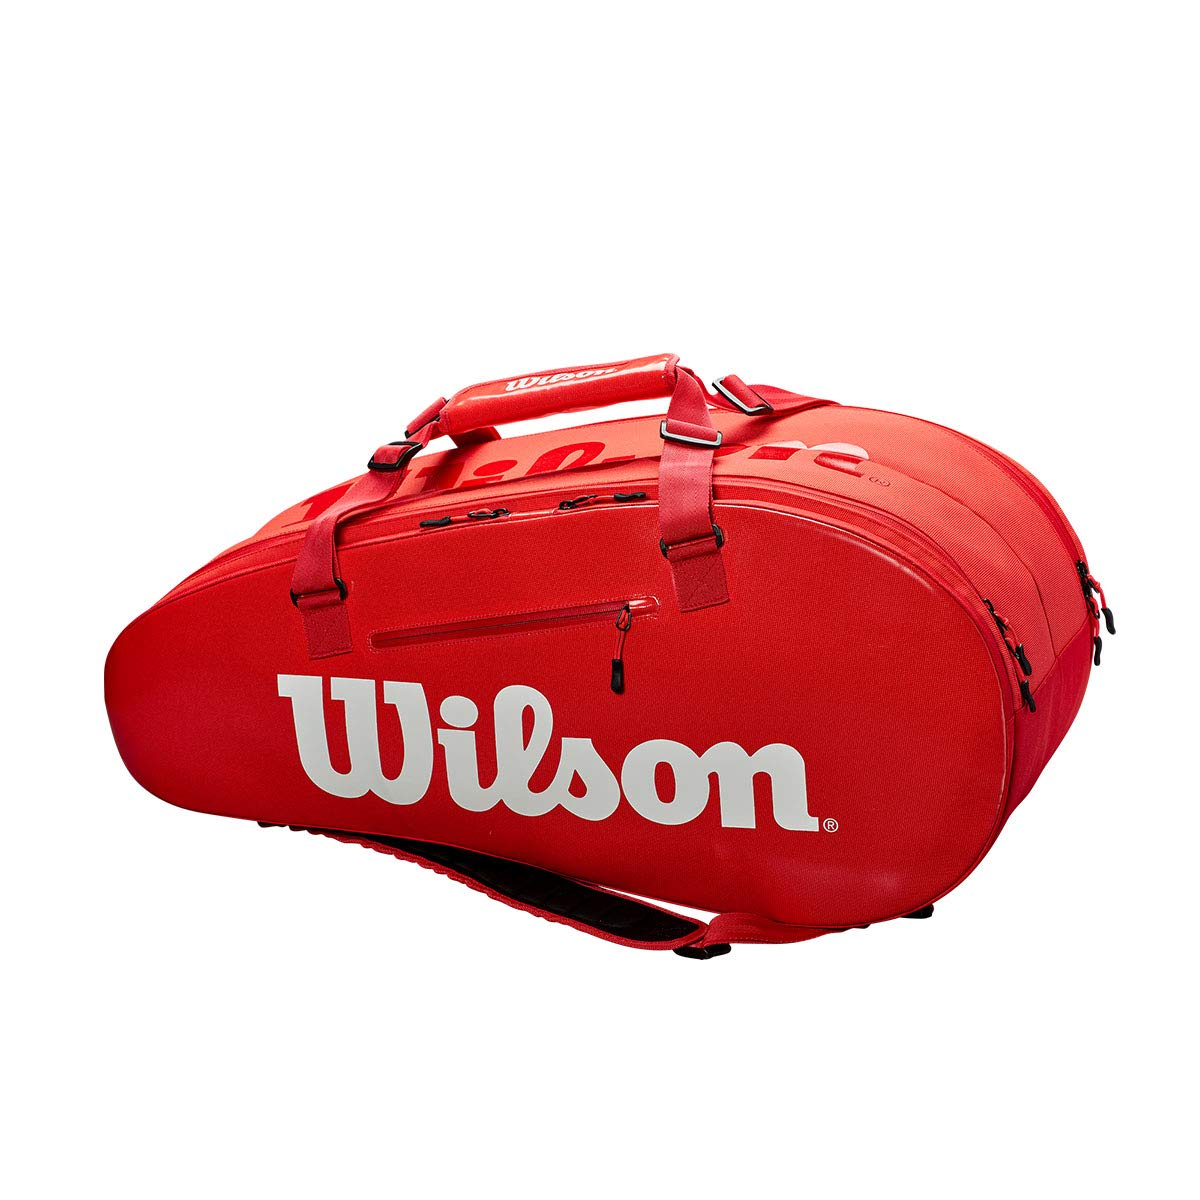 Wilson Sporting Goods Super Tour 2 Large Compartment Tennis Bag, Red/White